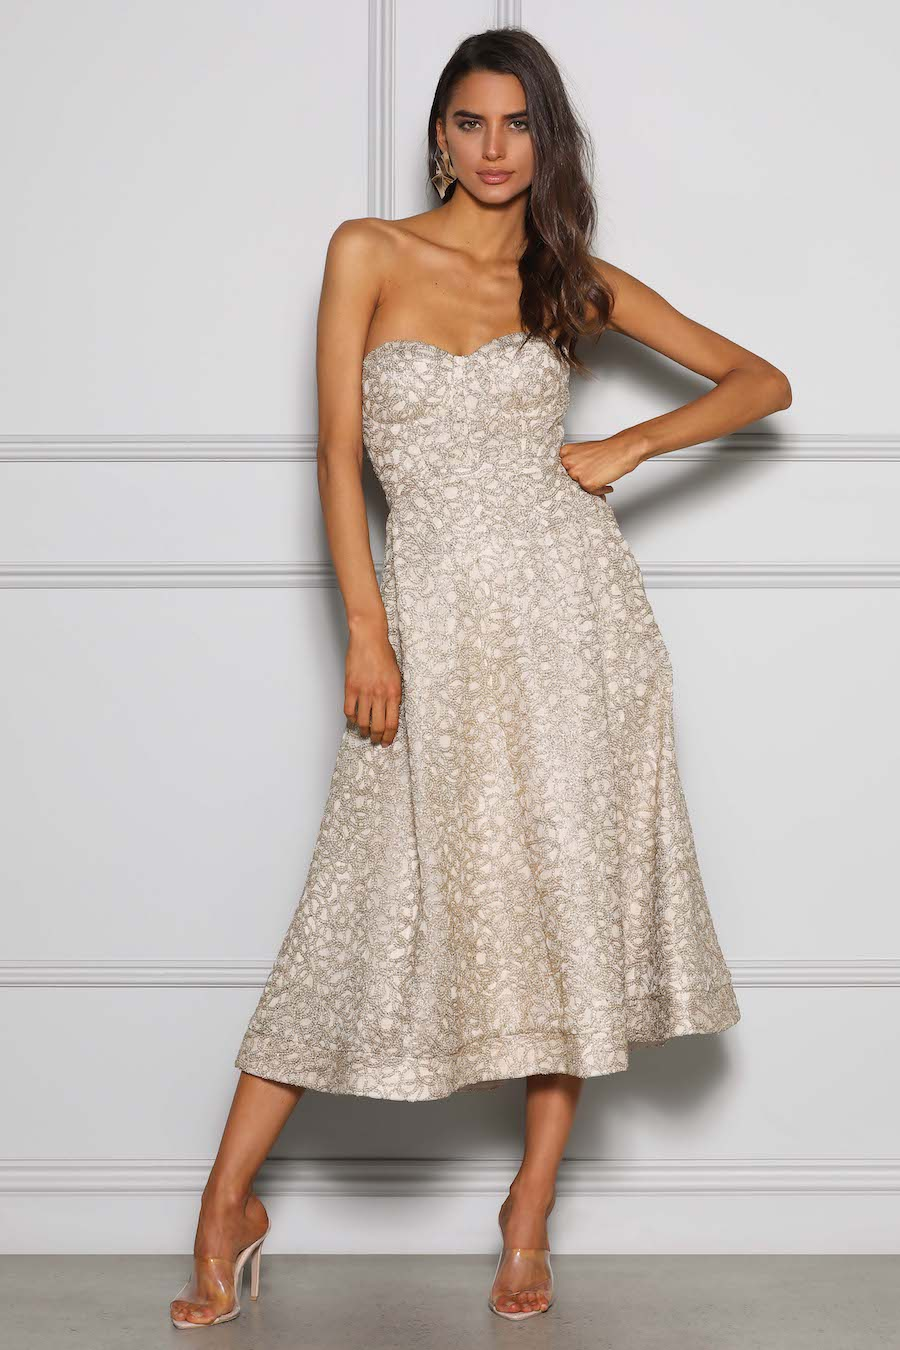 A line bustier dress with intricate gold lace